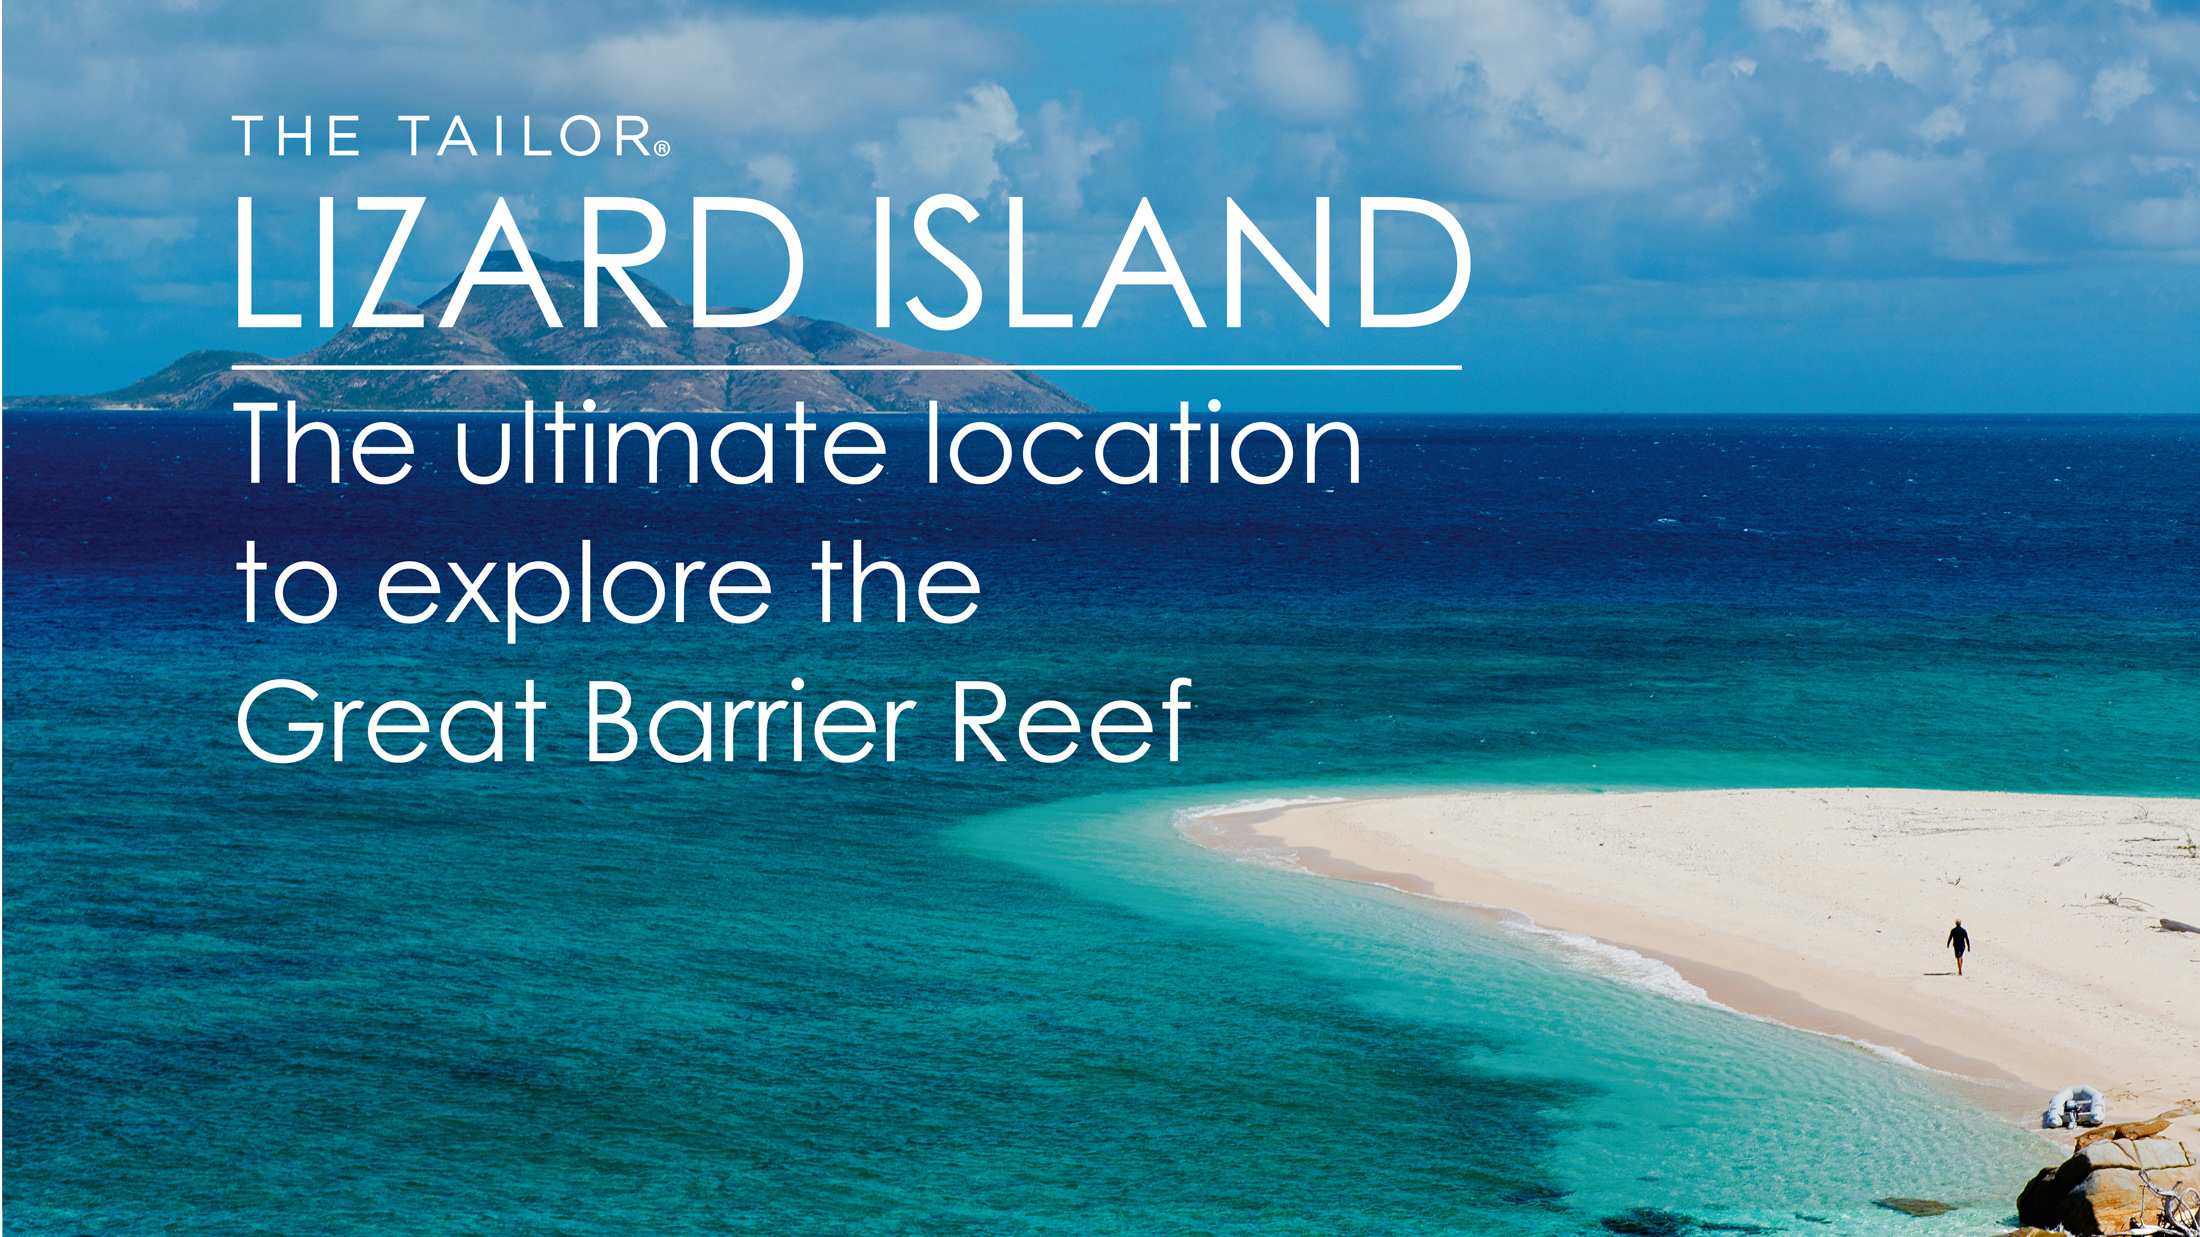 Thumbnail for the listing 'LIZARD ISLAND – THE GREAT BARRIER REEF EXPEDITION'